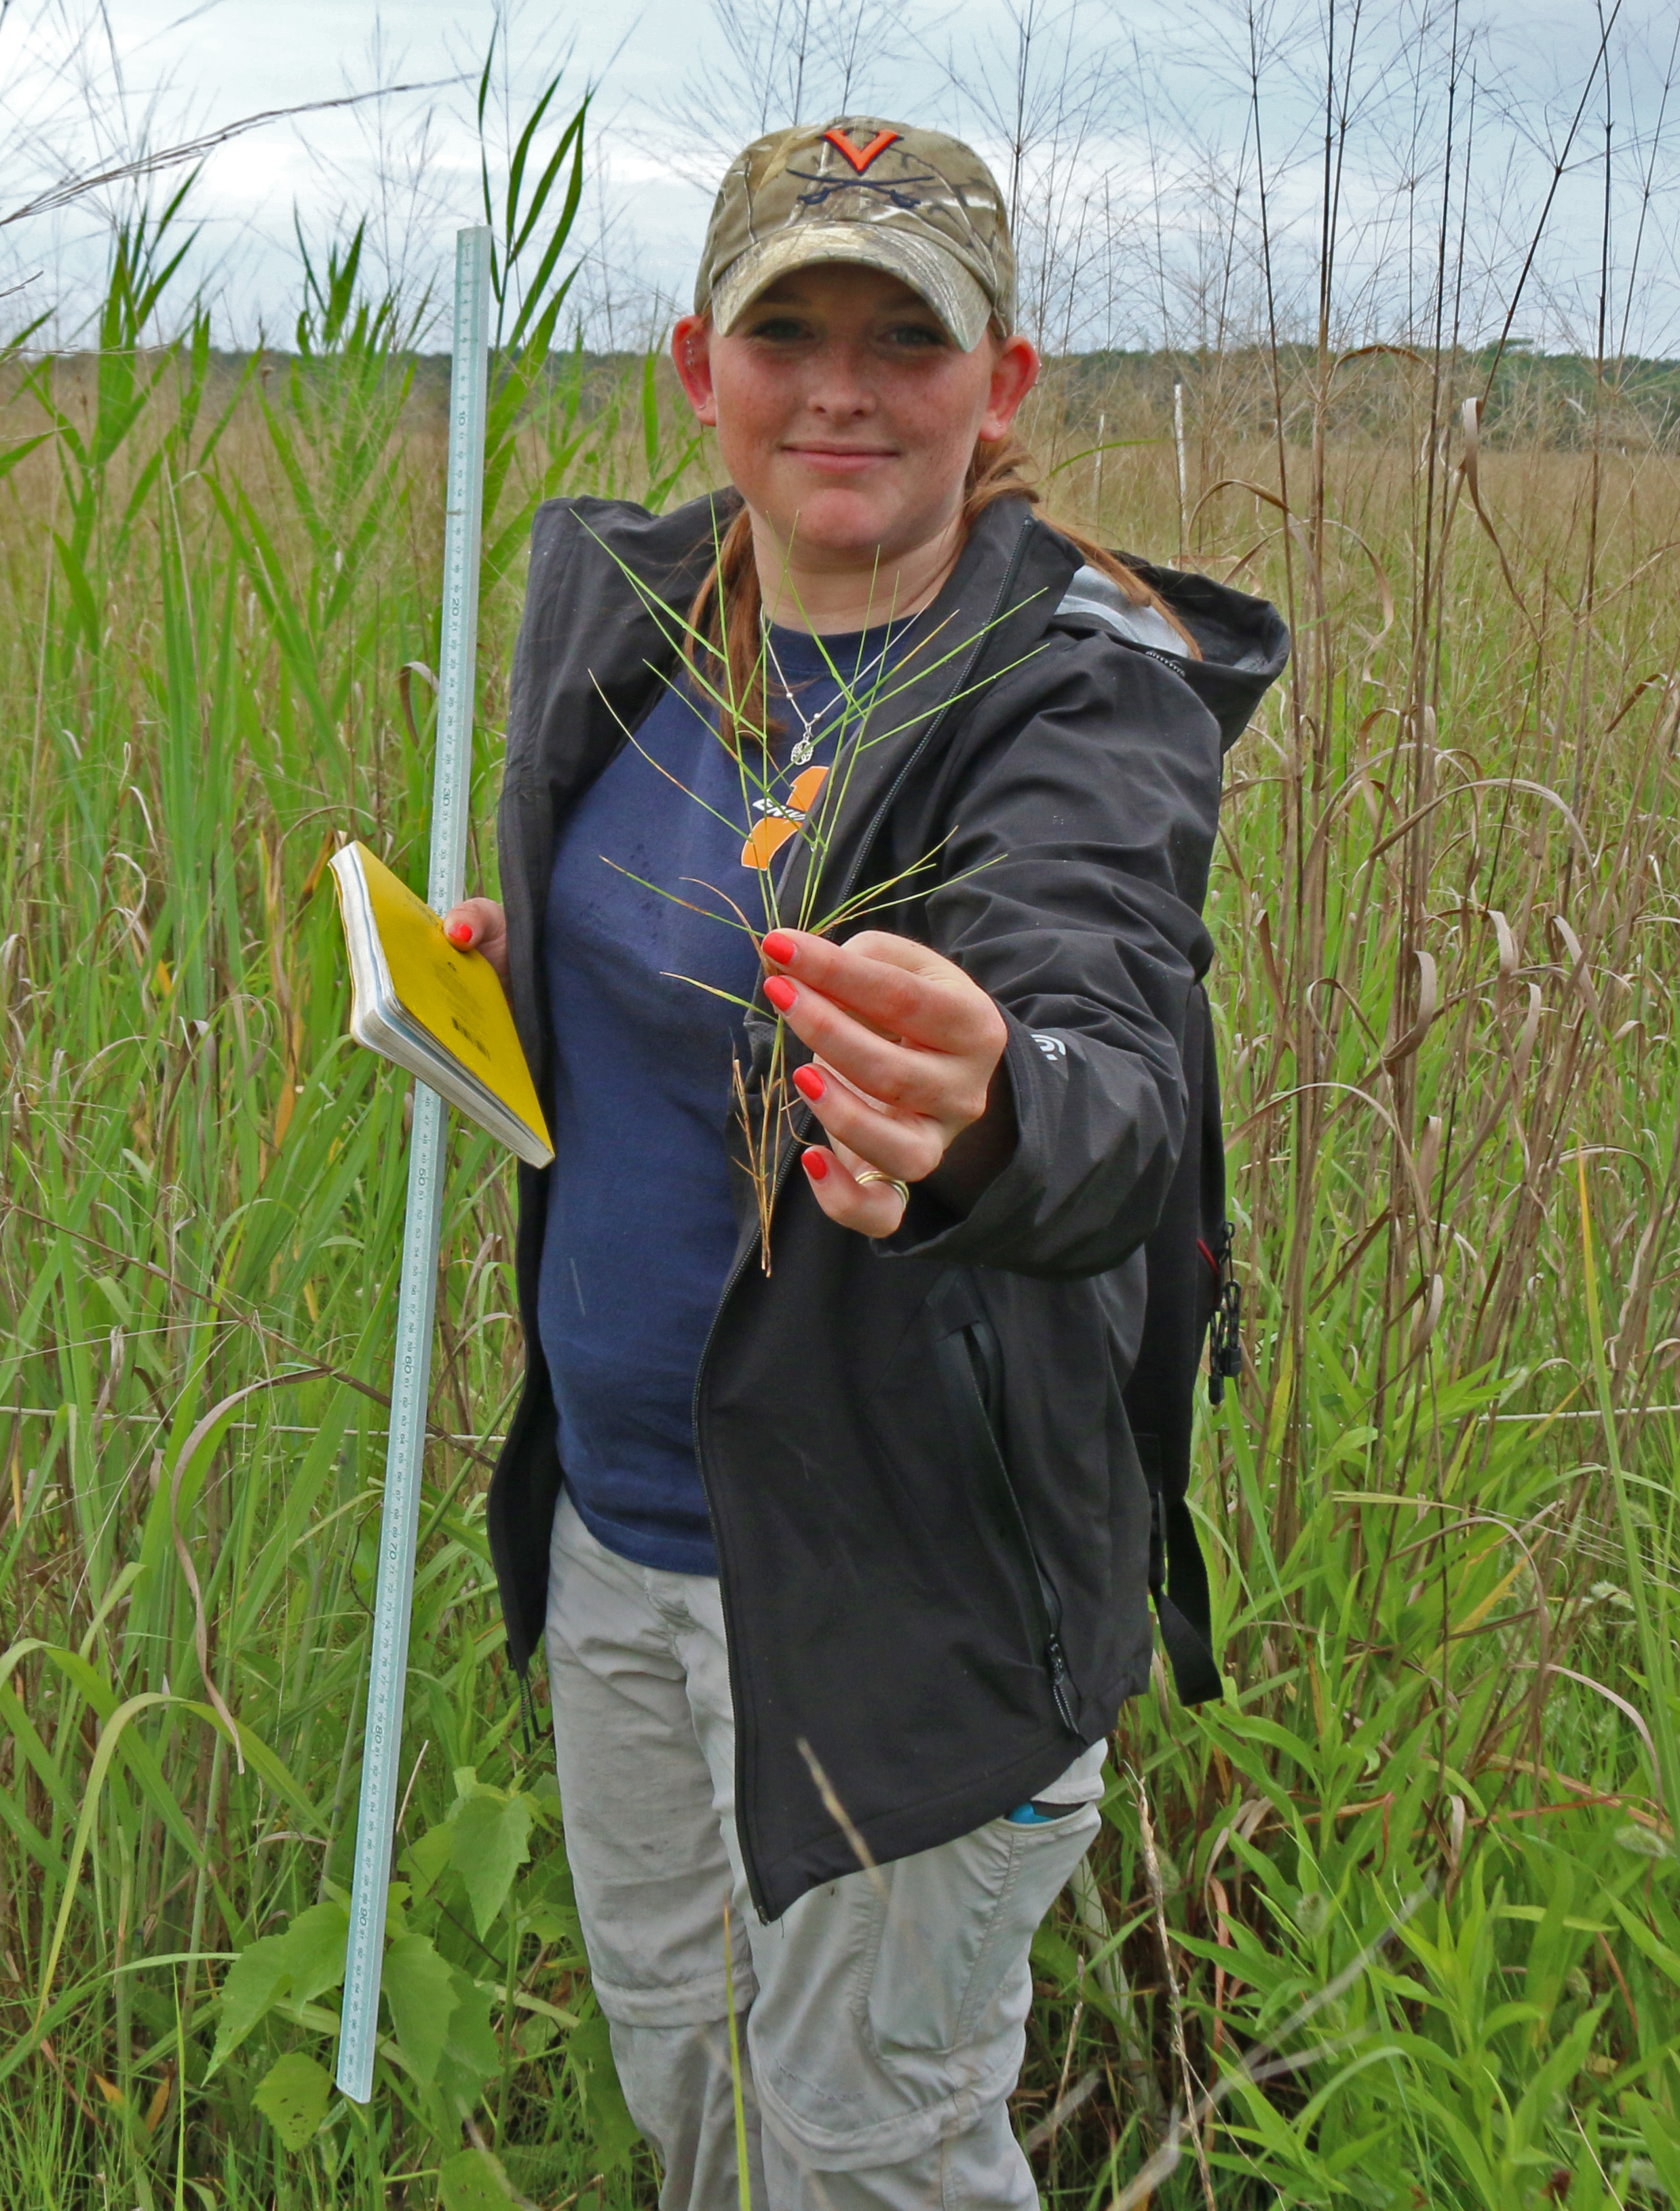 PhD student Victoria Long displaying one of the plant species at her study site along Virginia's Eastern Shore, where salt marsh is starting to expand into agricultural fields.